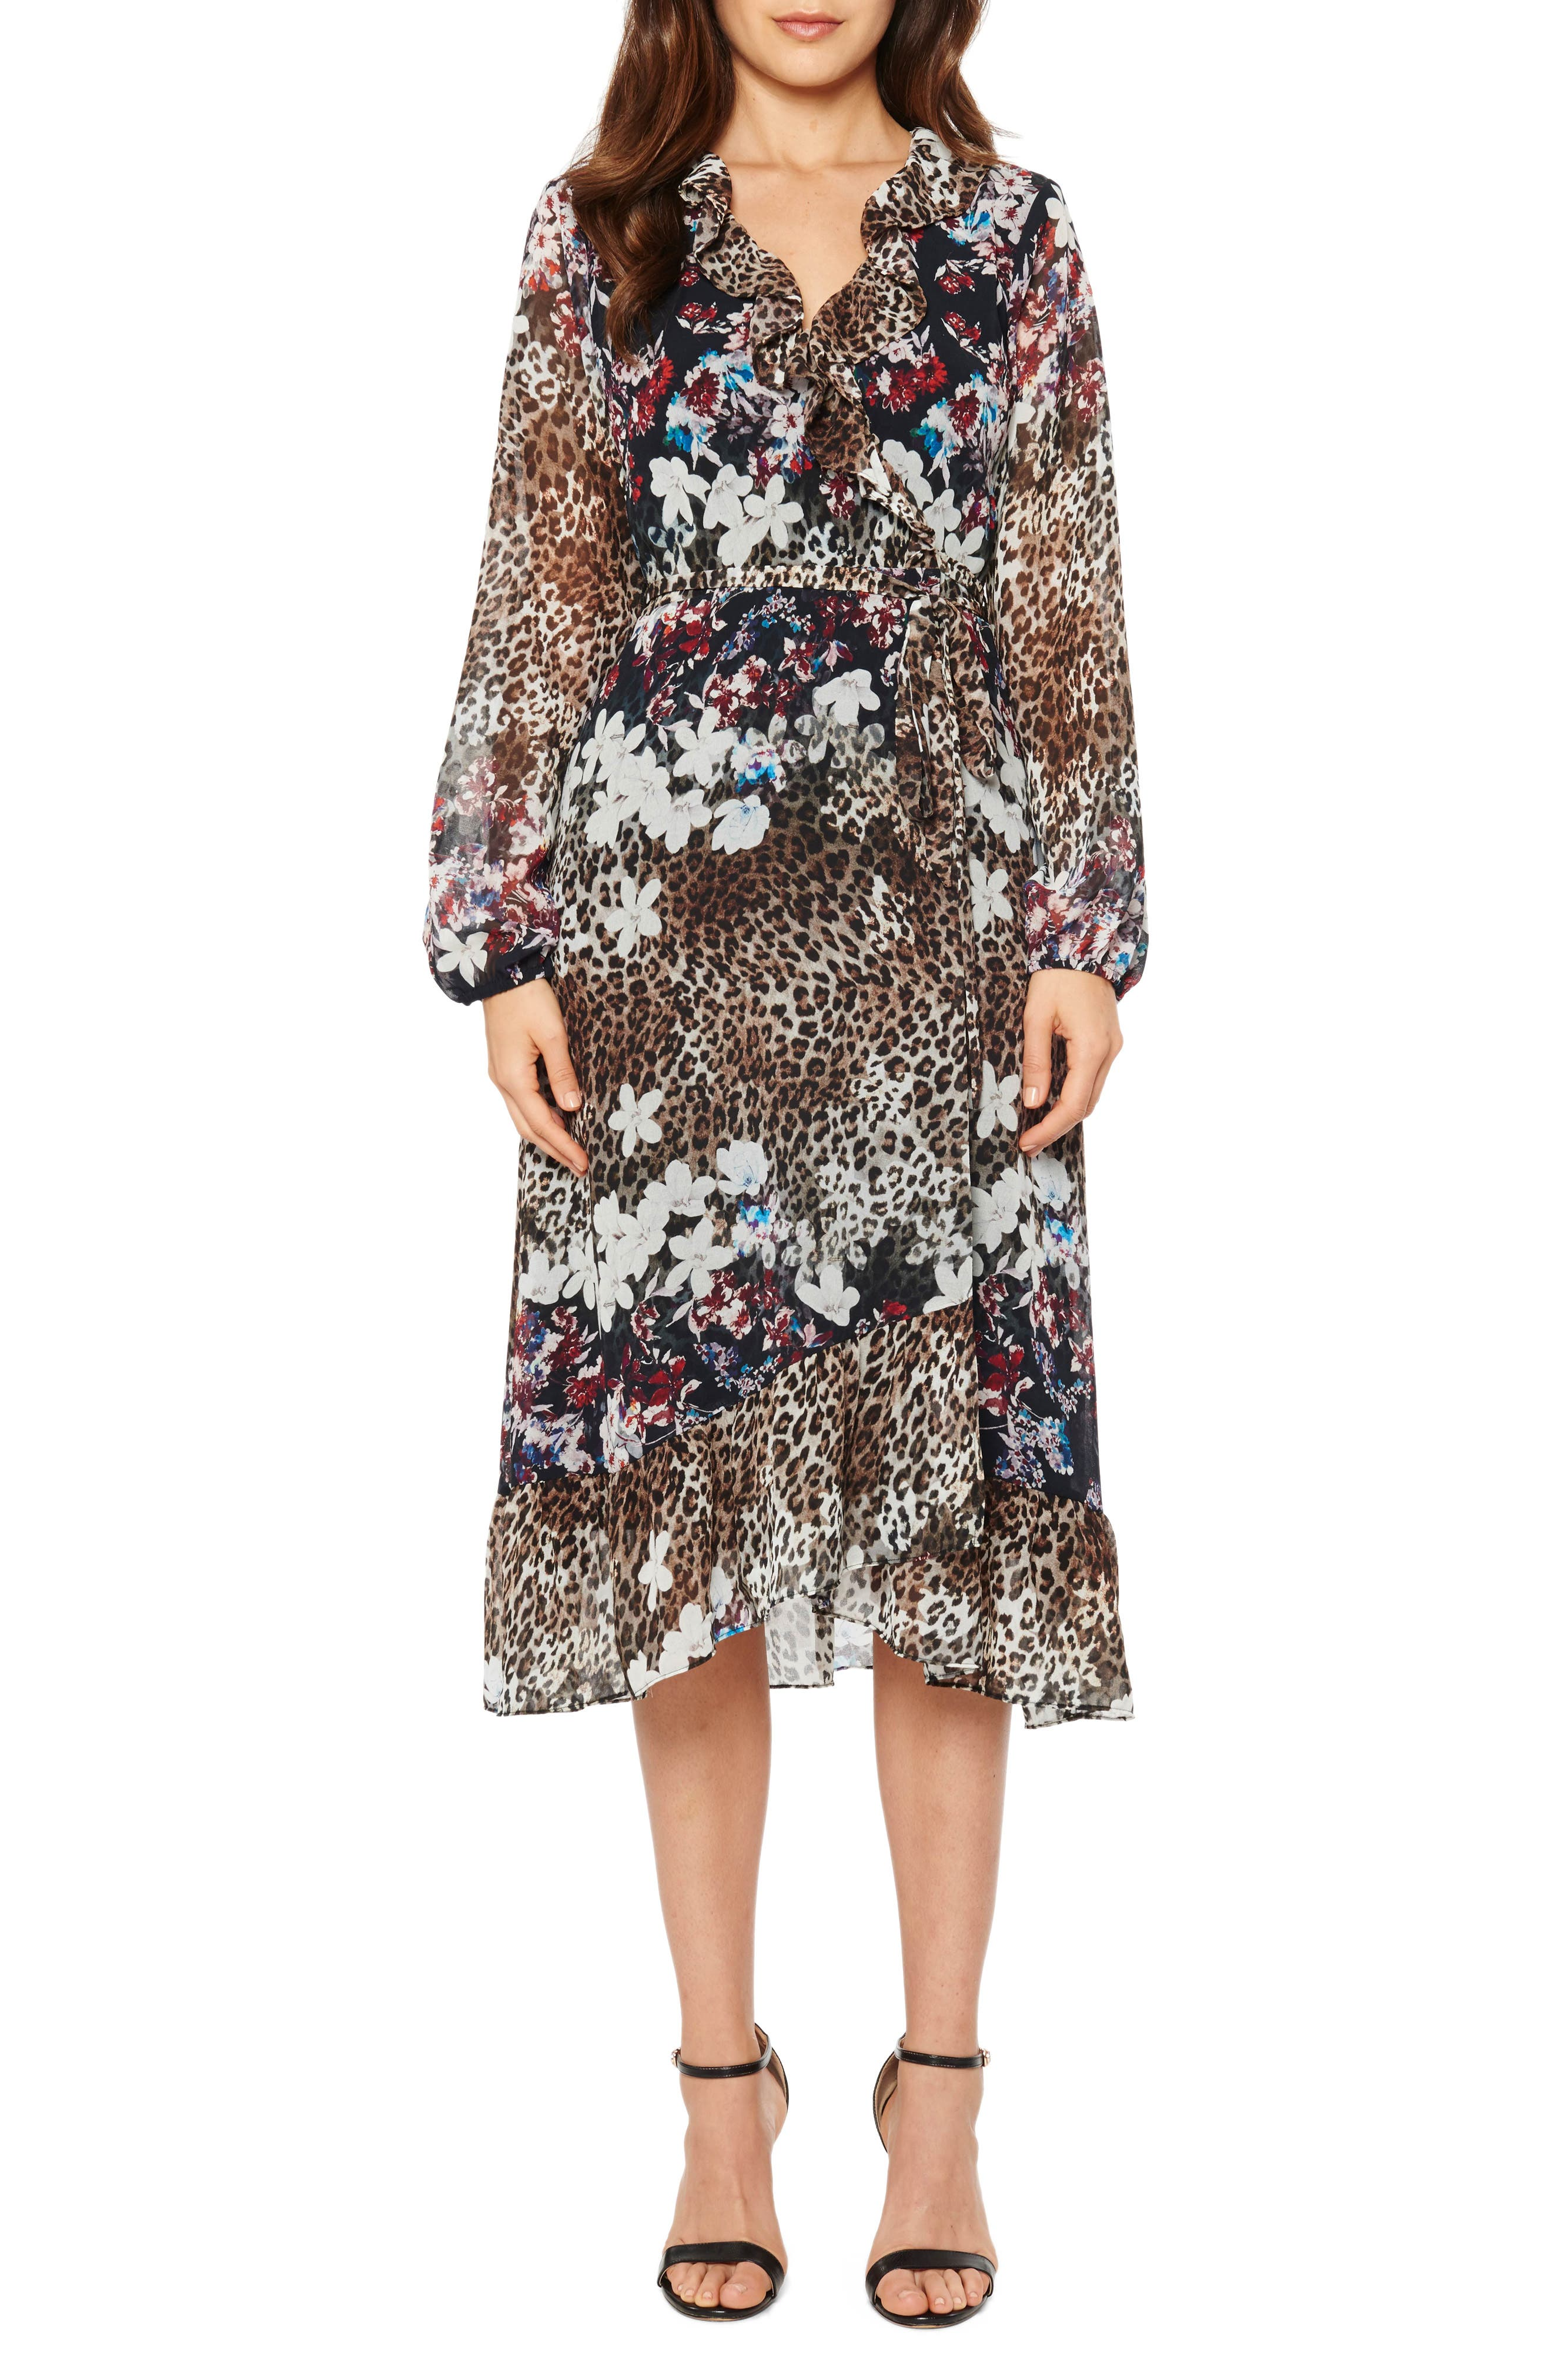 Alternate Image 1 Selected - Willow & Clay Animal Print Floral Wrap Dress